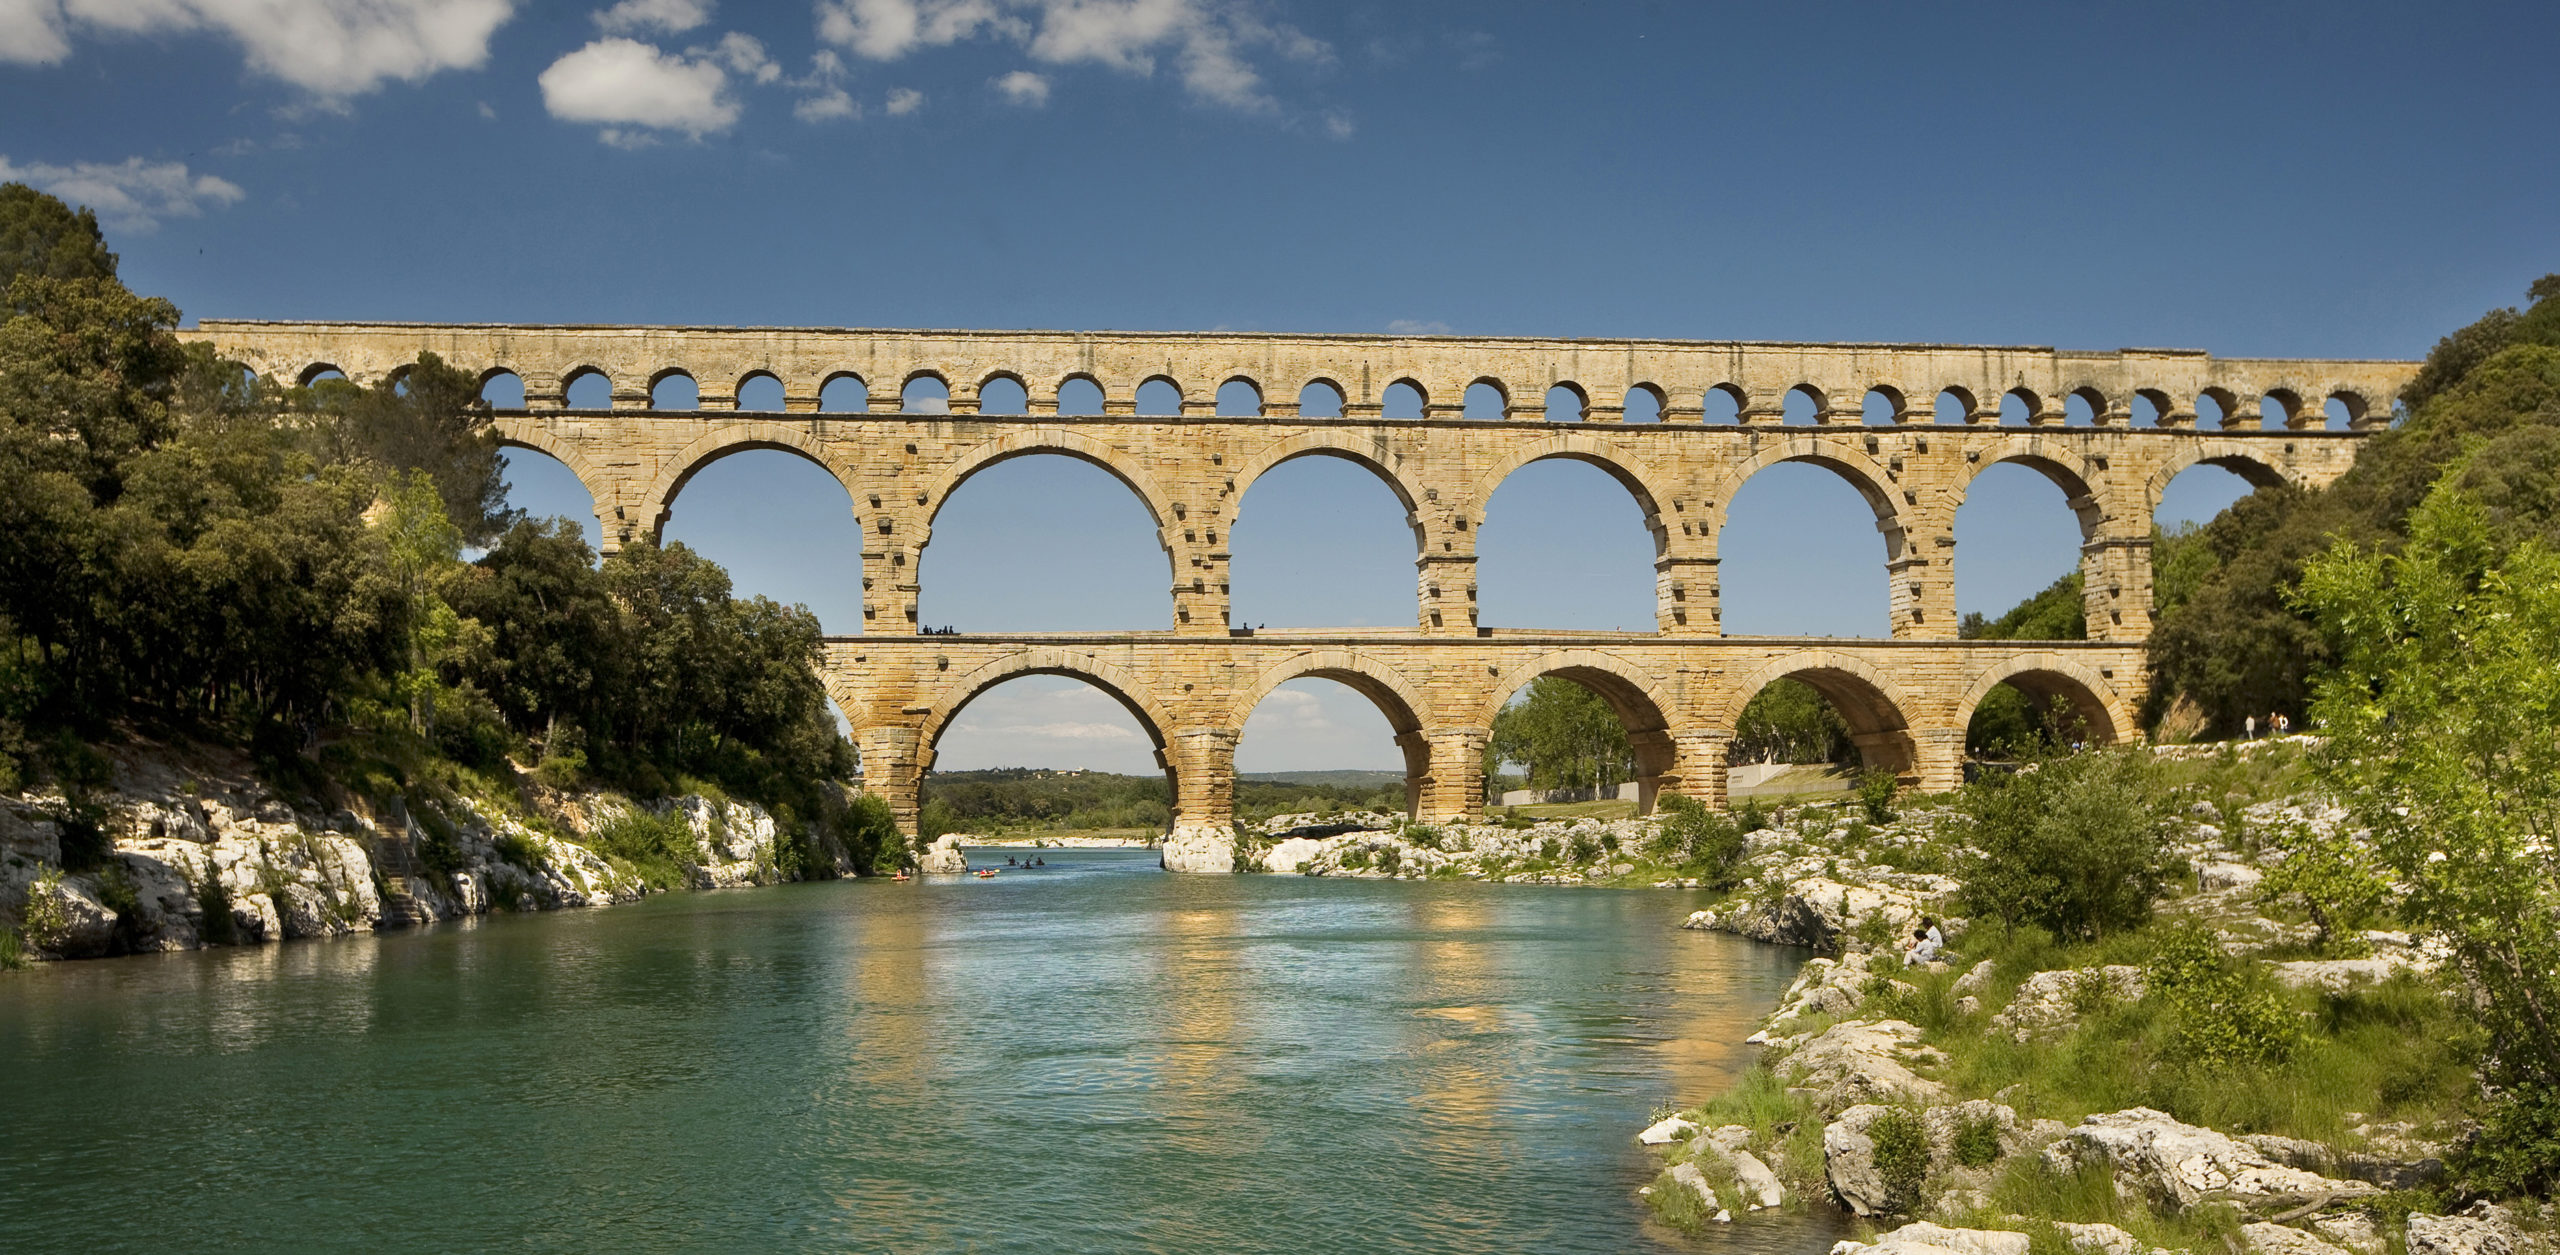 Roman Provence: Only in Provence - Part 6 - MyFrenchlife.org - Pont du Gard